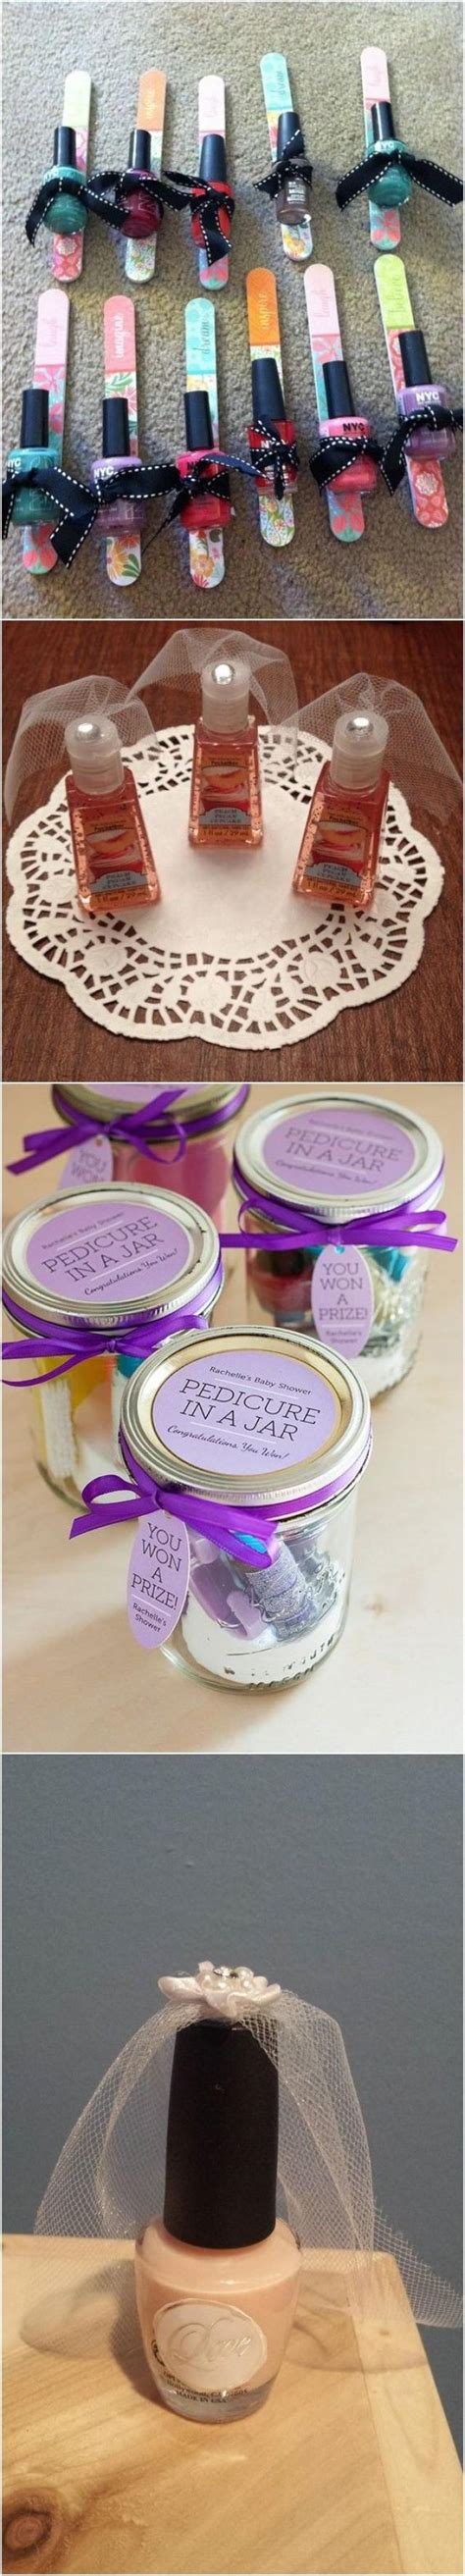 wedding shower favor gift ideas 20 bridal shower favor gifts your guests will like 2692065 weddbook